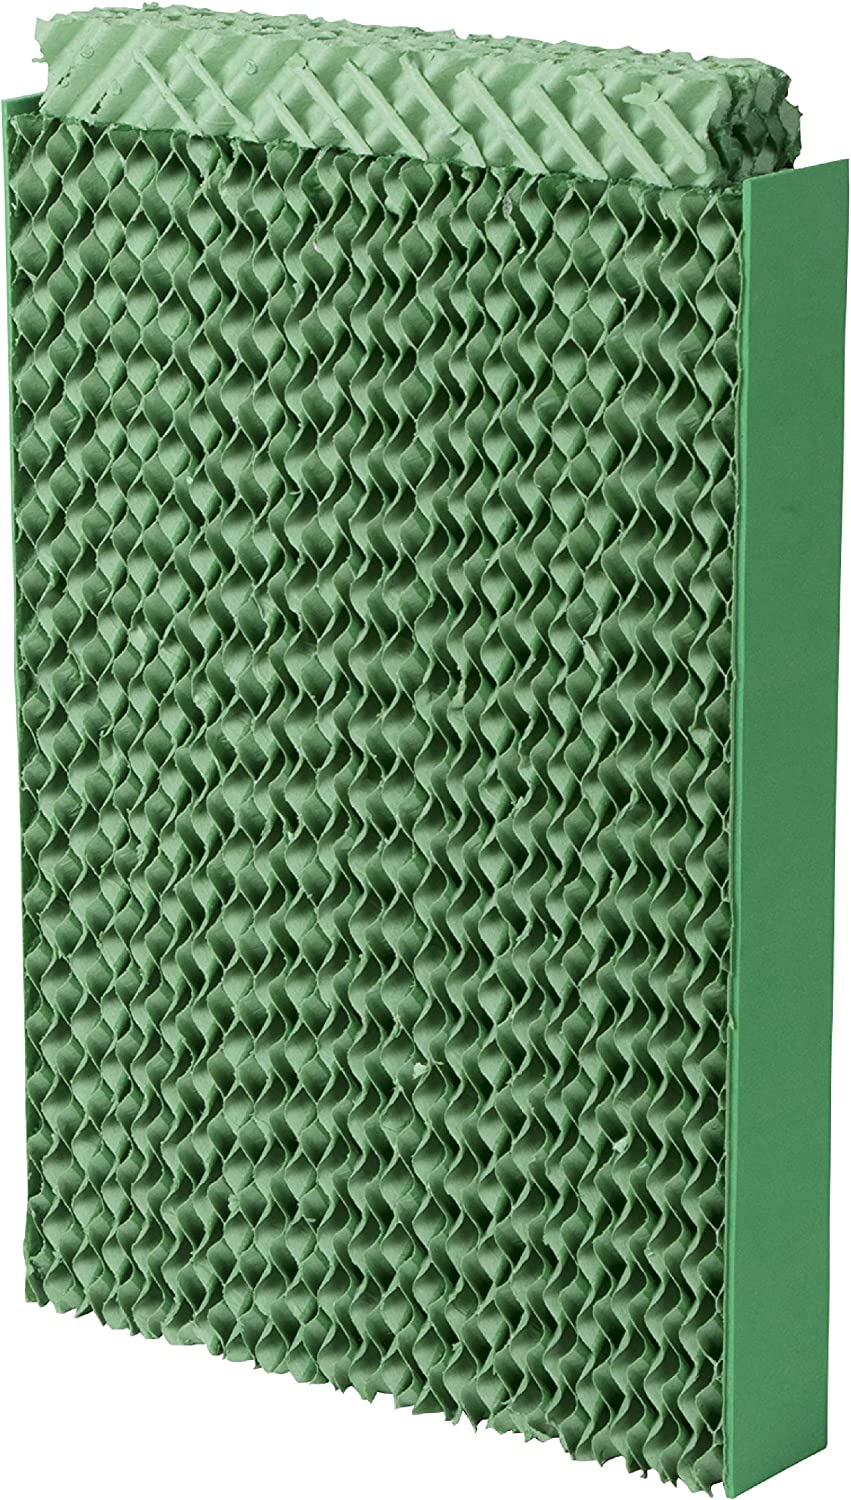 BLACK+DECKER Replacement Cooling Pad for BEAC75 Evaporative Air Cooler